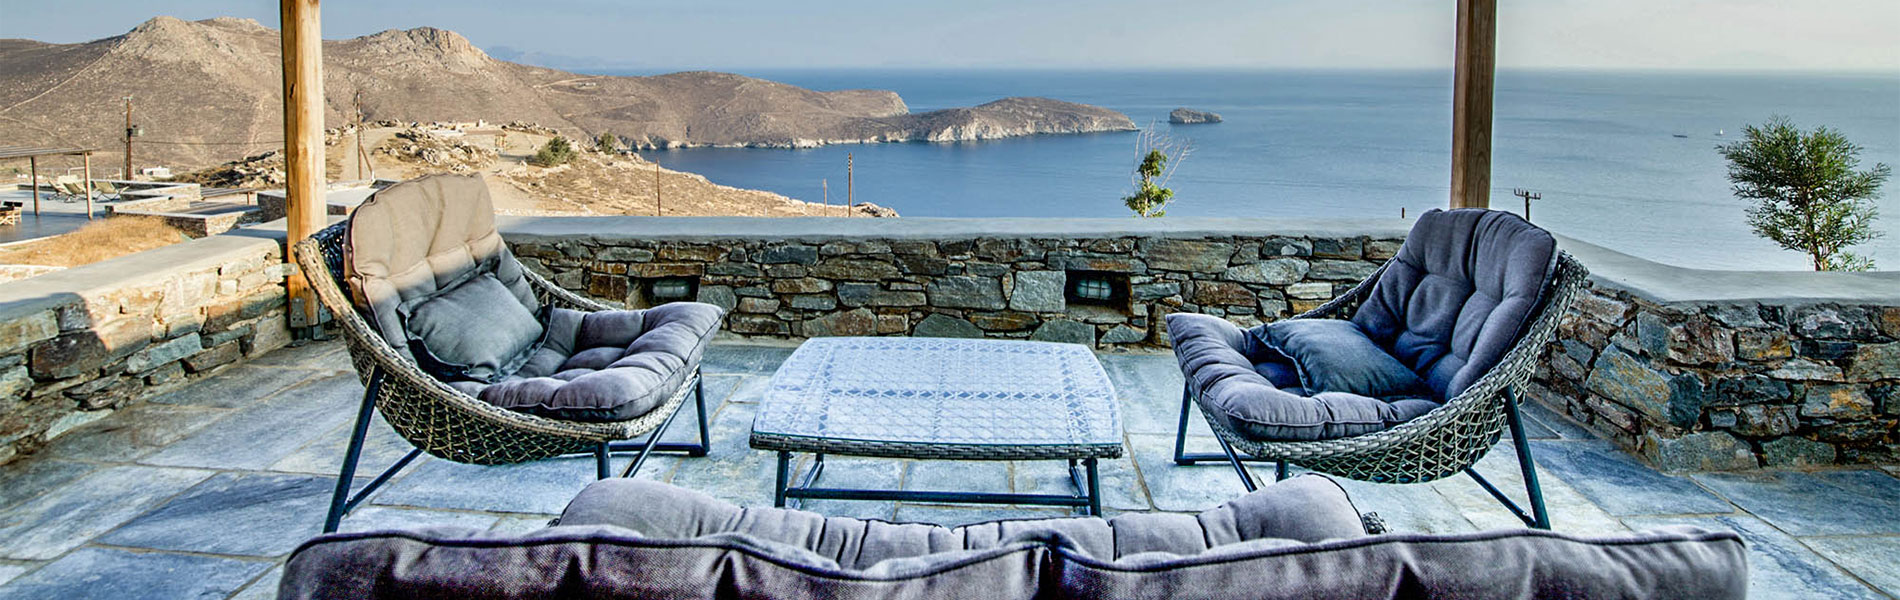 PROLAT GOES TO SERIFOS! Image